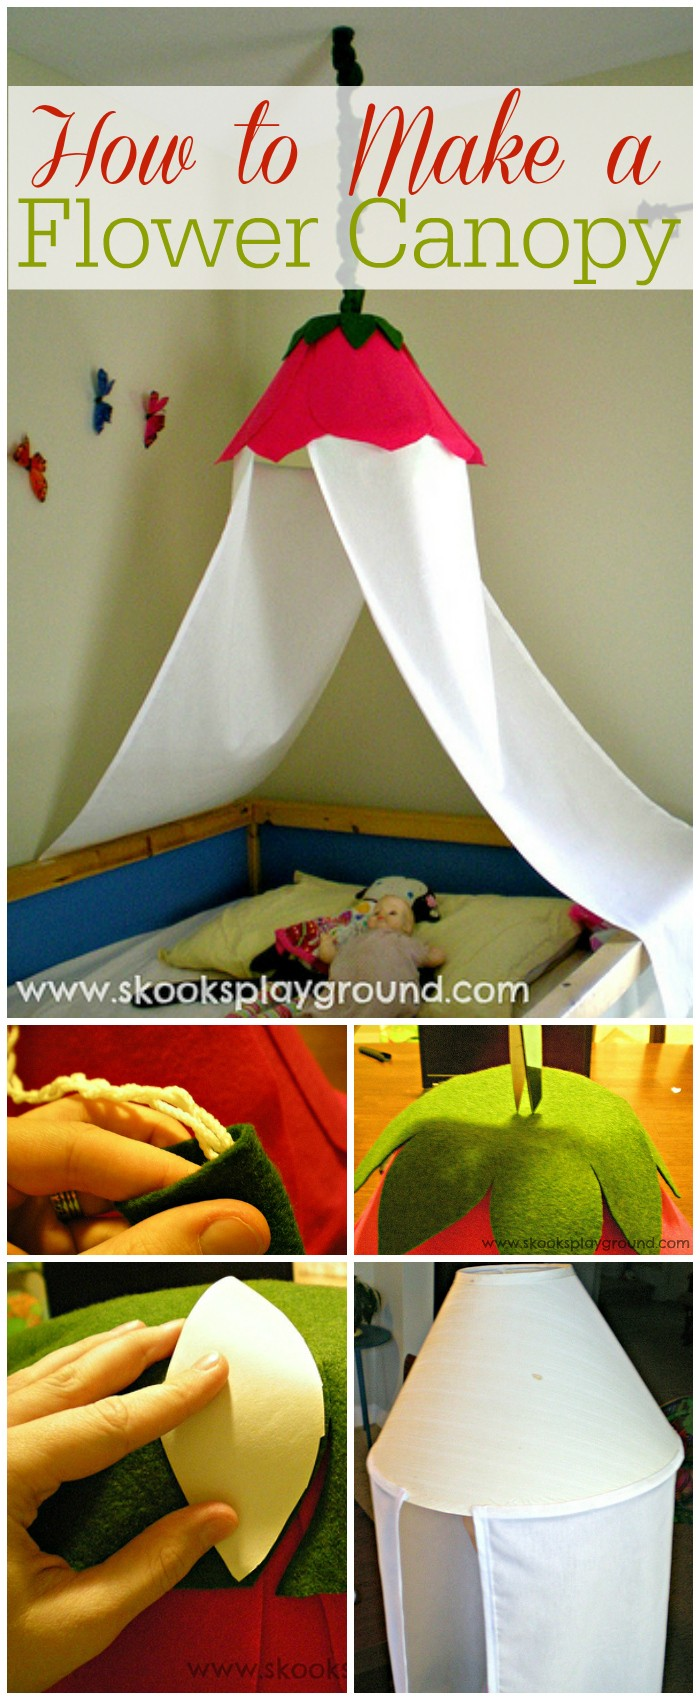 DIY Bed Canopy Ideas Without Spending A Lot How to Make a Flower Canopy